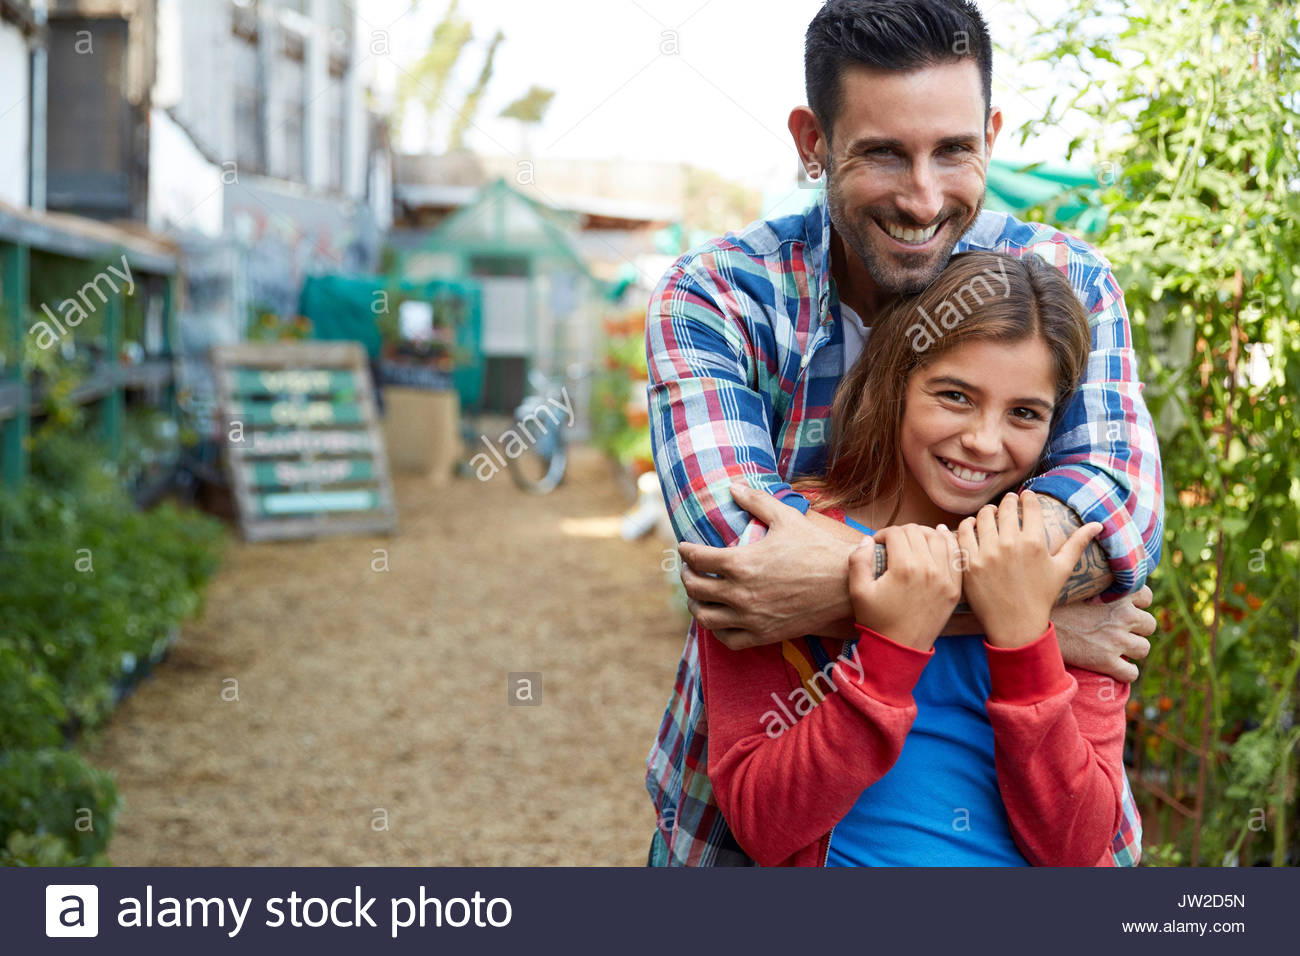 Portrait smiling father and daughter hugging in garden Stock Photo